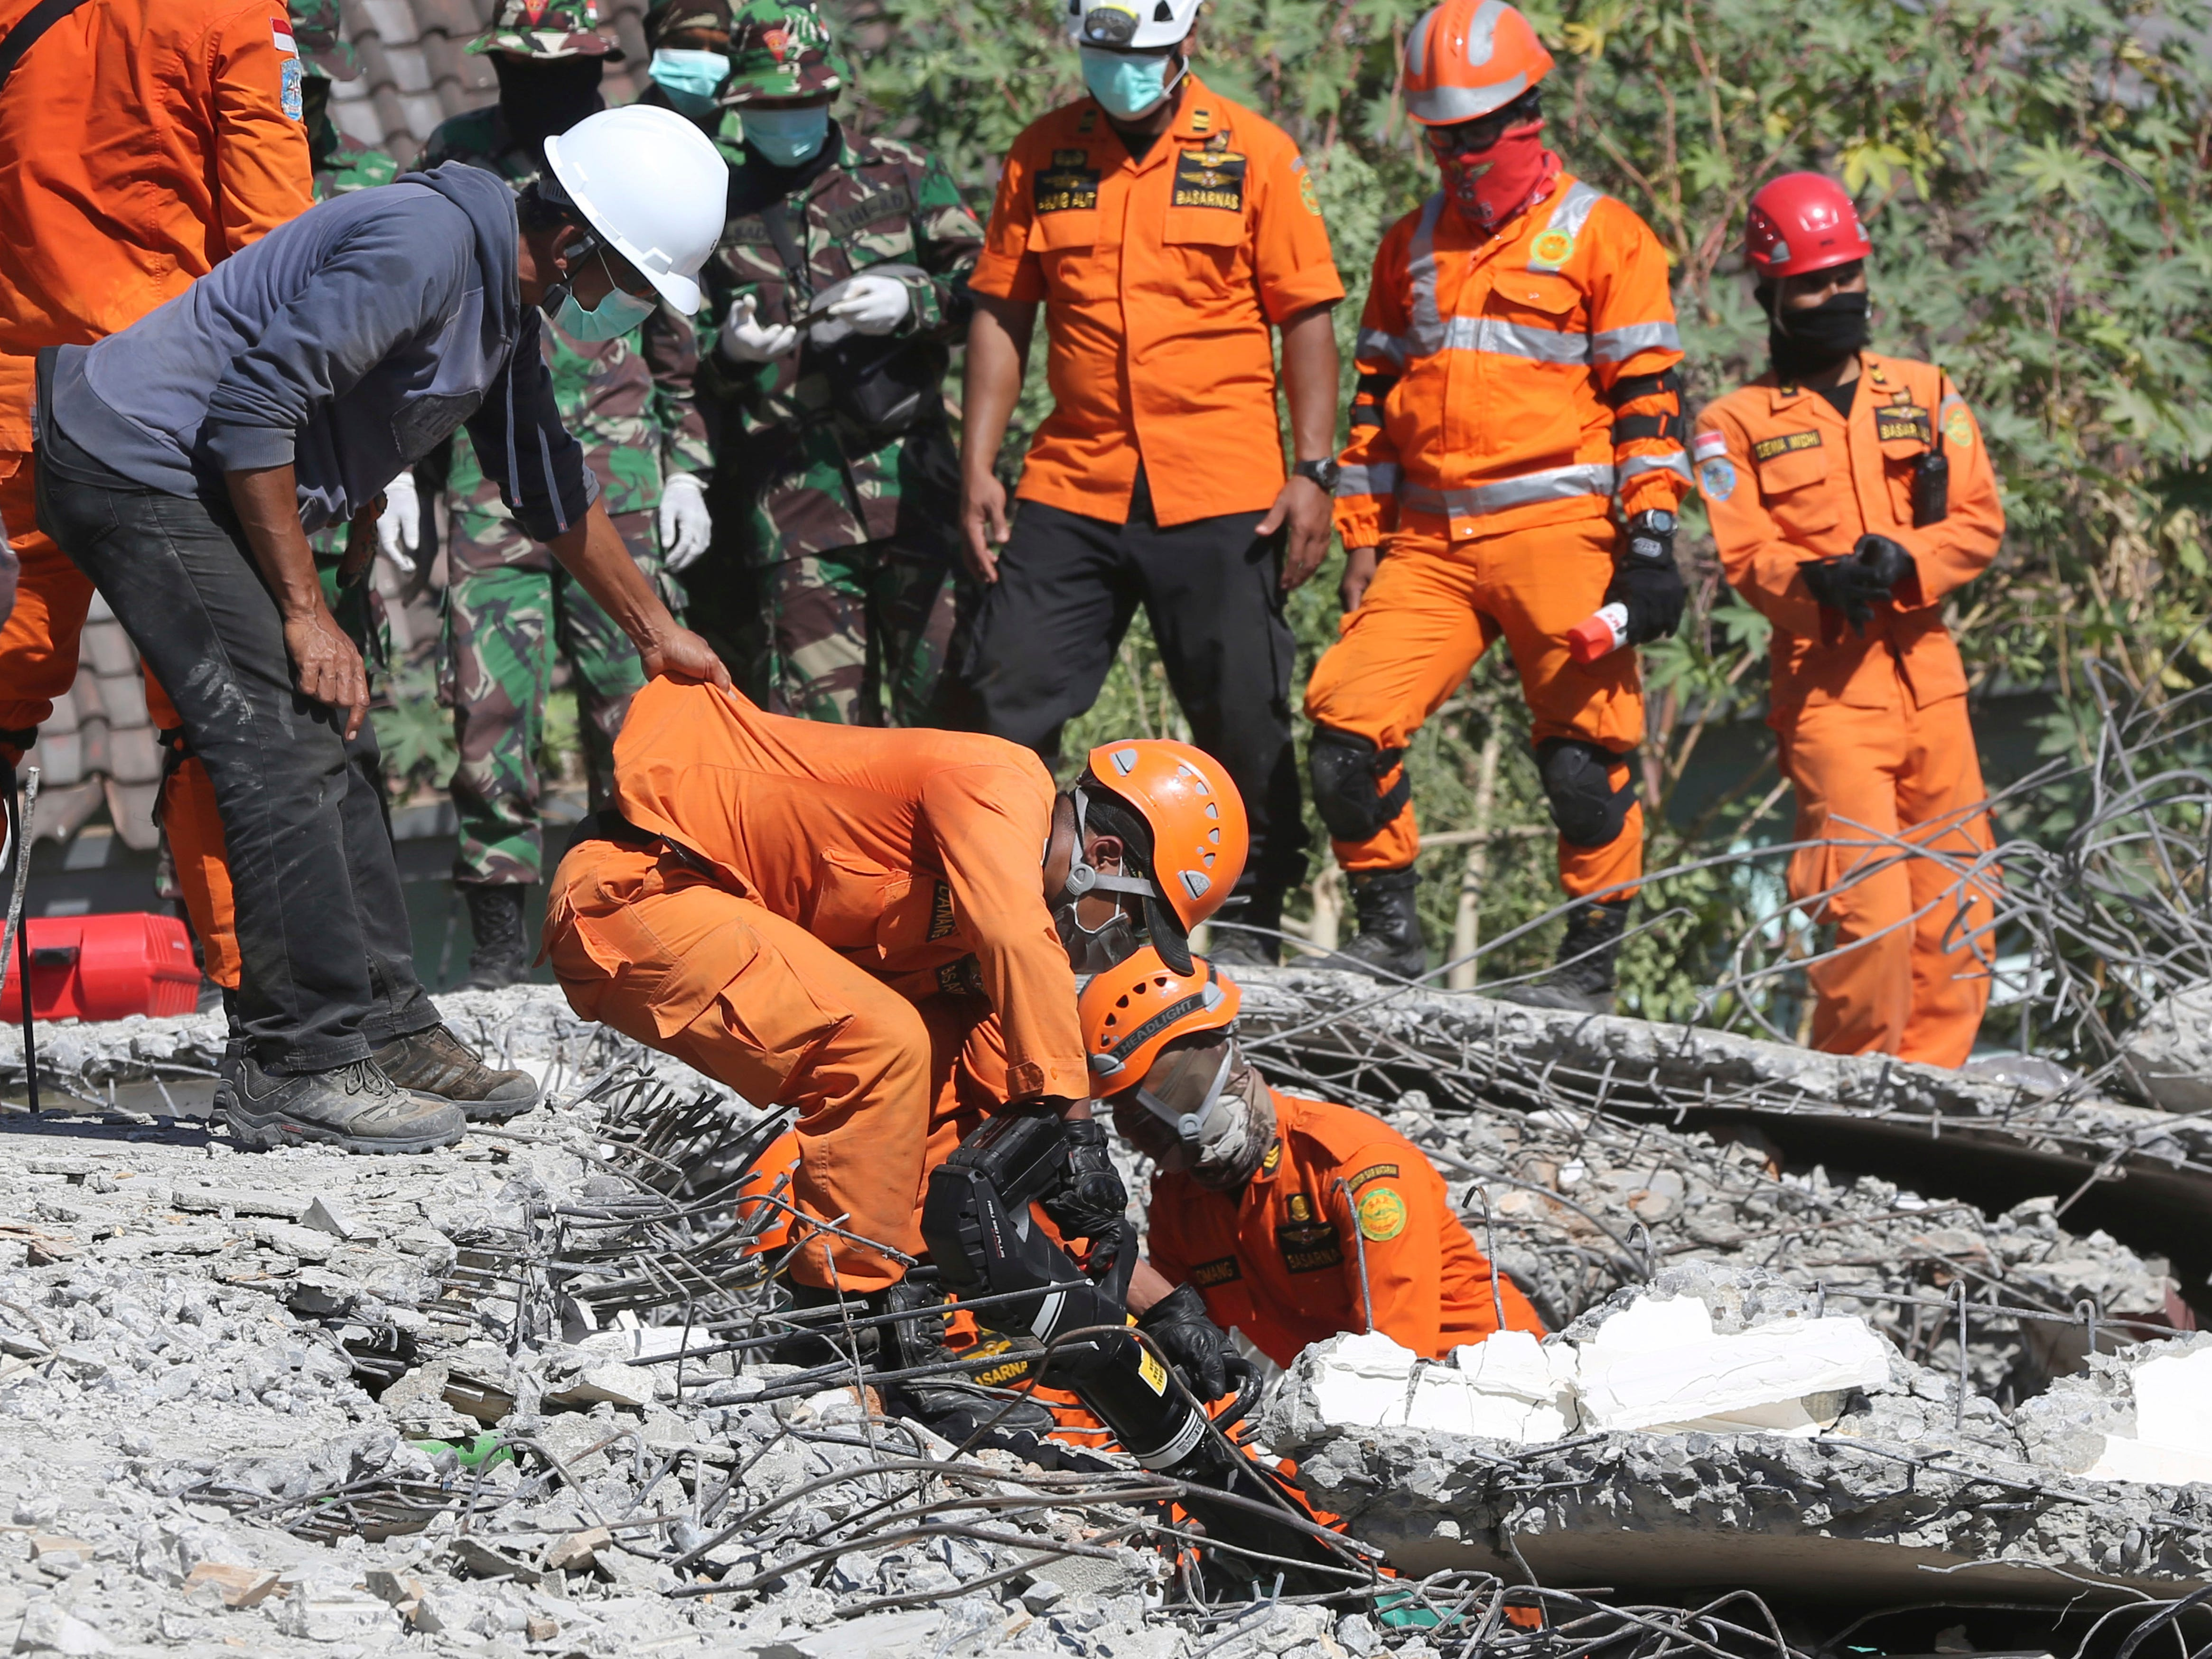 Rescuers carry the body of an earthquake victim recovered from the collapsed Jabal Nur mosque in North Lombok, Indonesia, Tuesday, Aug. 7, 2018. The north of Lombok was devastated by the powerful quake that struck Sunday night, damaging thousands of buildings and killing a large number of people. Rescuers were still struggling to reach all of the affected areas and authorities expect the death toll to rise.